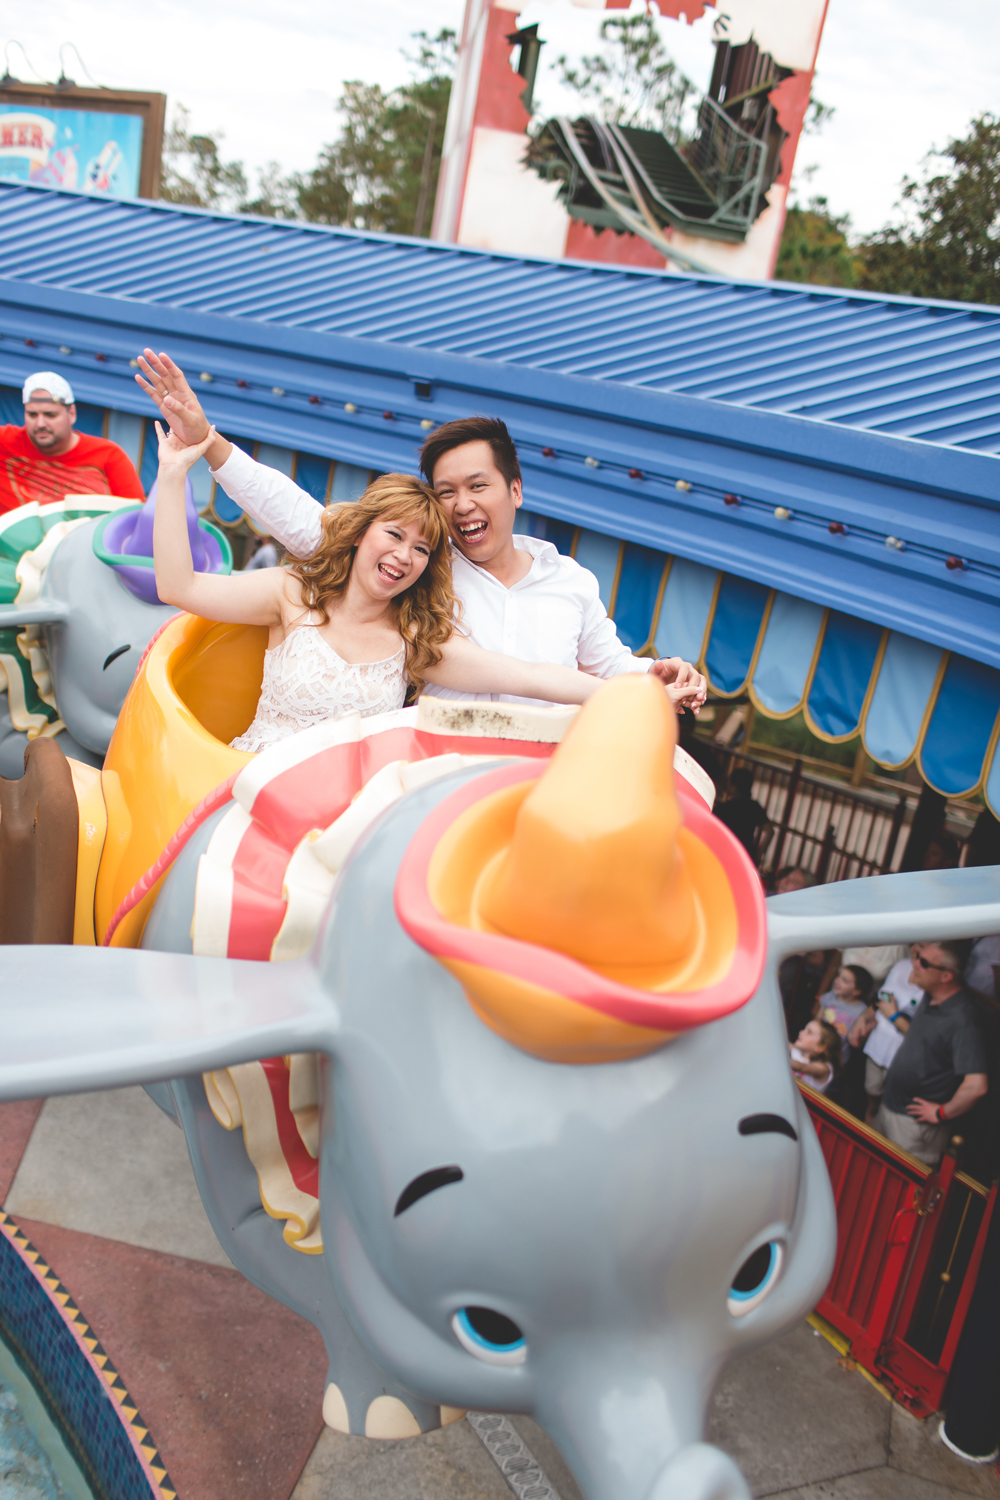 Disney Honeymoon session - Disney Engagement Photos - Disney Wedding Photographer - Destination Orlando Wedding Photographer - Jaime DiOrio (38).jpg